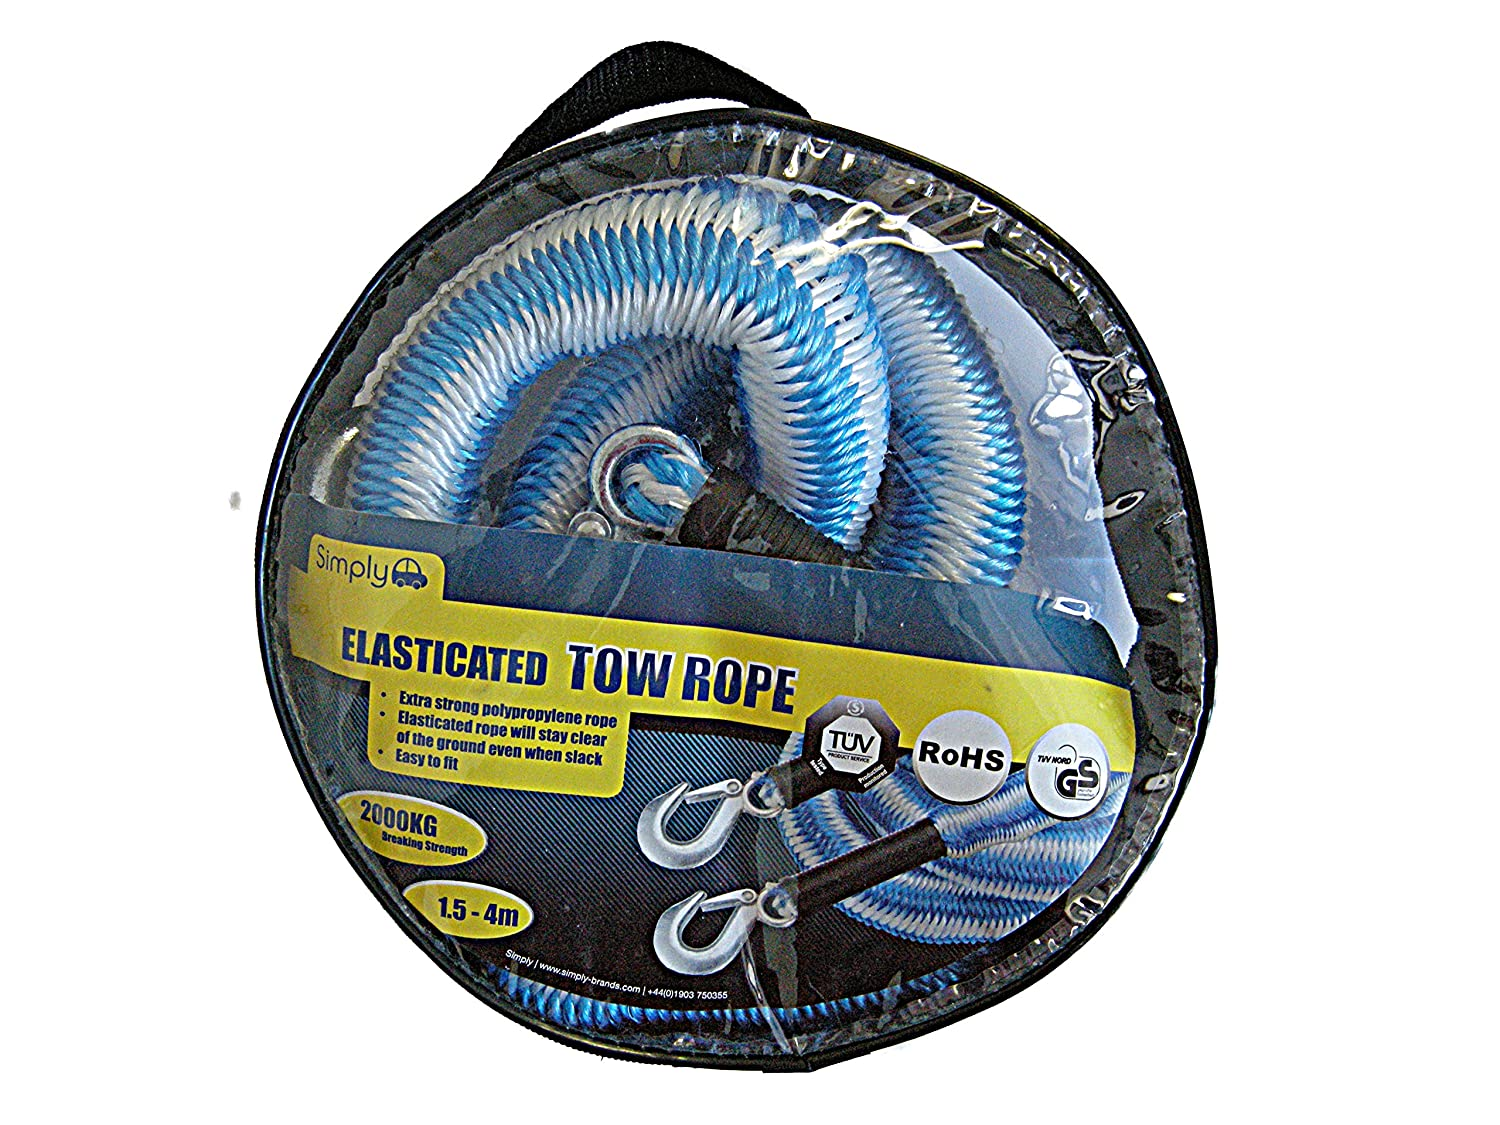 Simply TRE2000 Elasticated Tow Rope